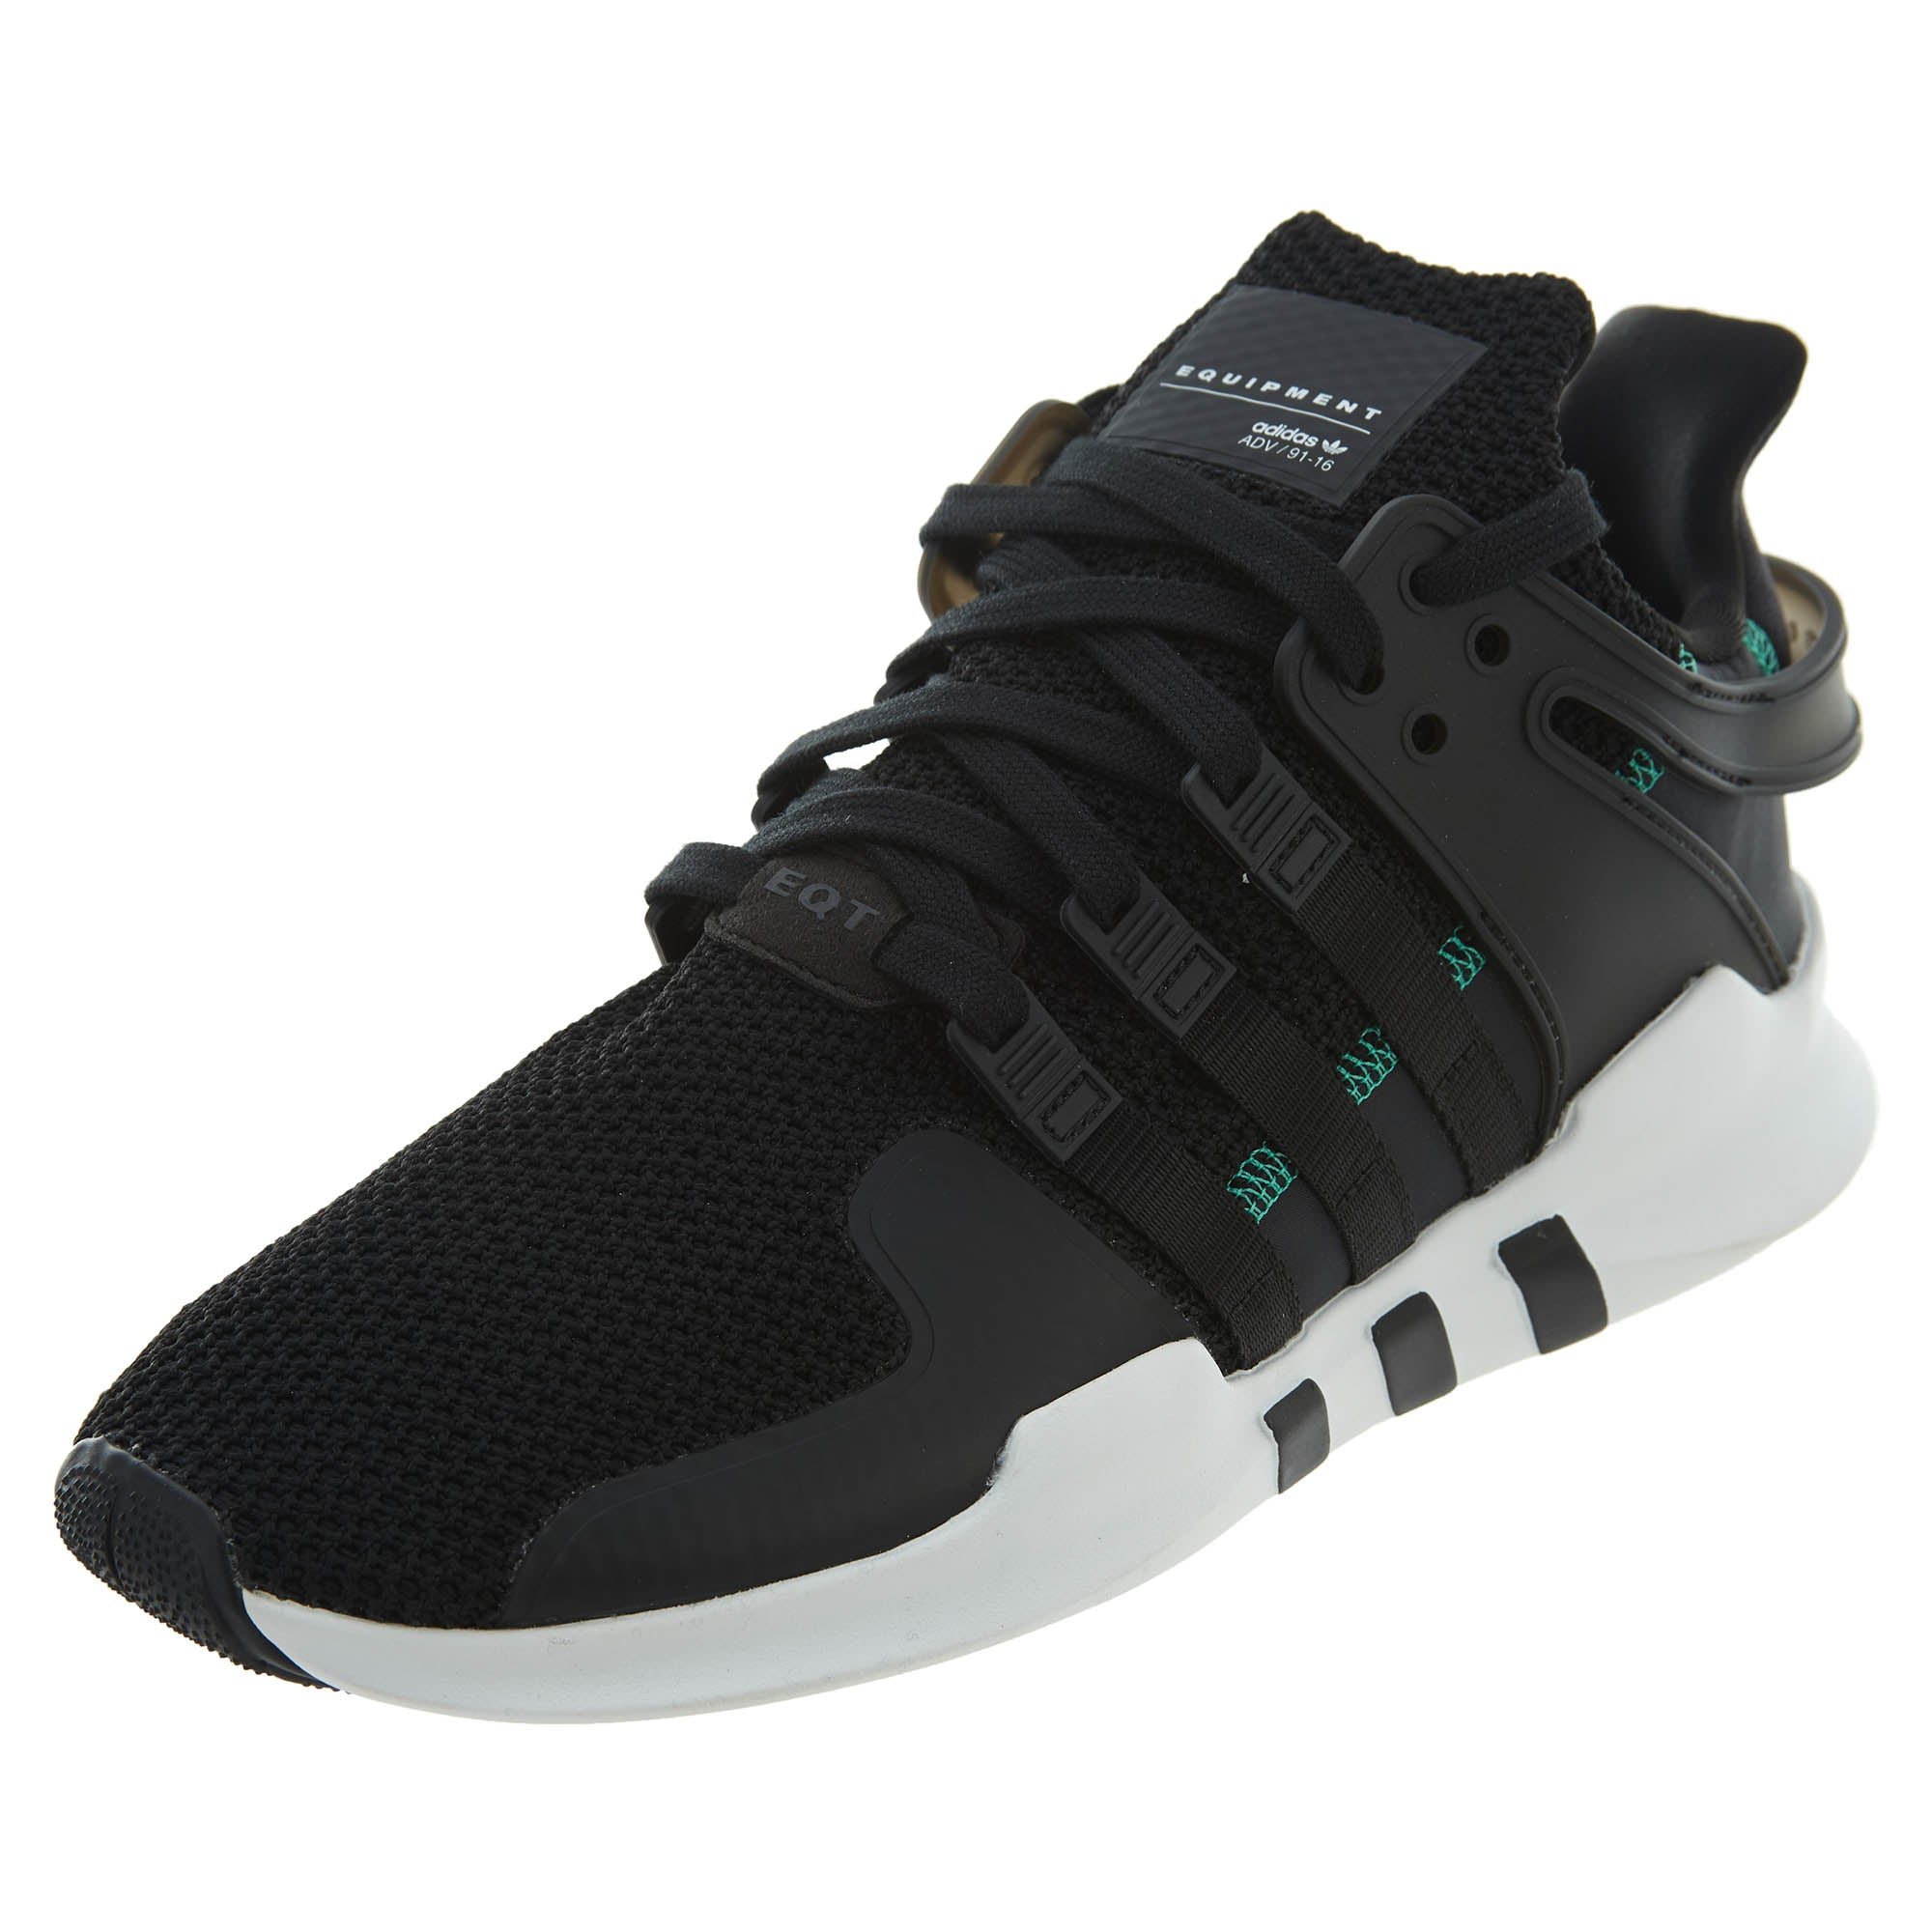 2ec18291a7c4 Adidas Eqt Support Adv Mens Cq3006 – Sneaker Experts